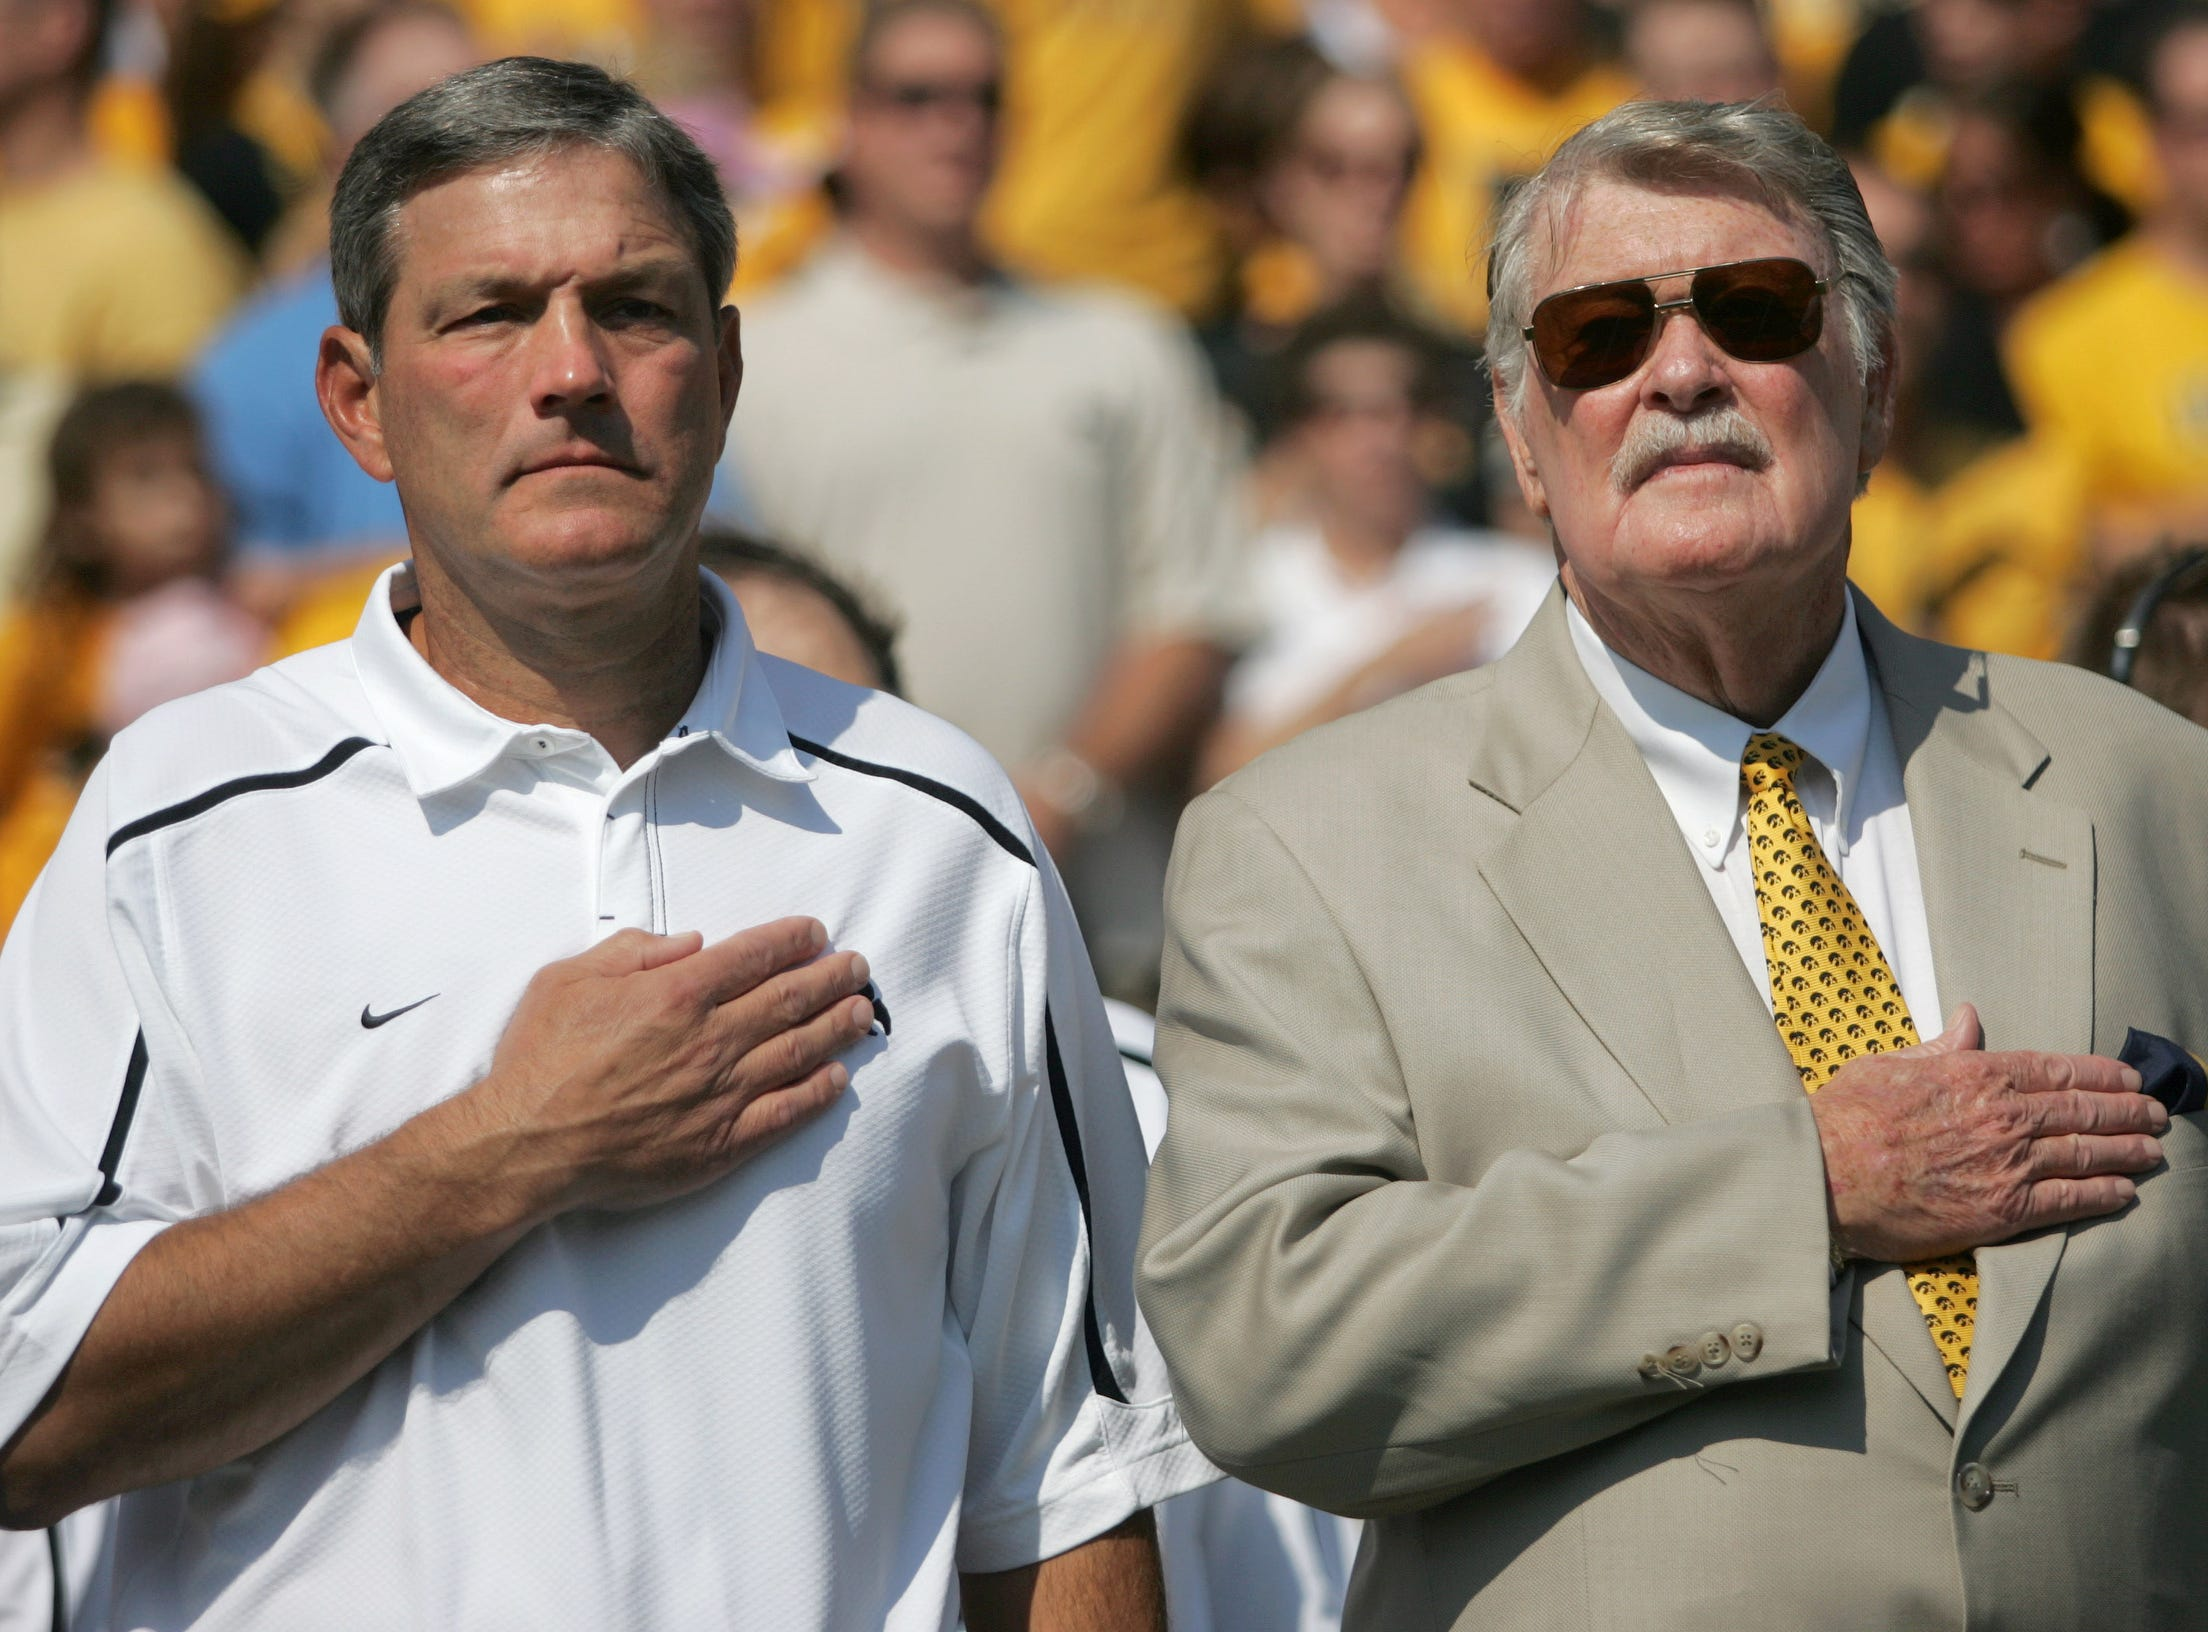 Iowa head coach Kirk Ferentz, left, and former Iowa coach Hayden Fry stand together during the National Anthem Sept. 5, 2009 in Iowa City.  Fry was an honorary team captain for the Hawkeyes' season opener.